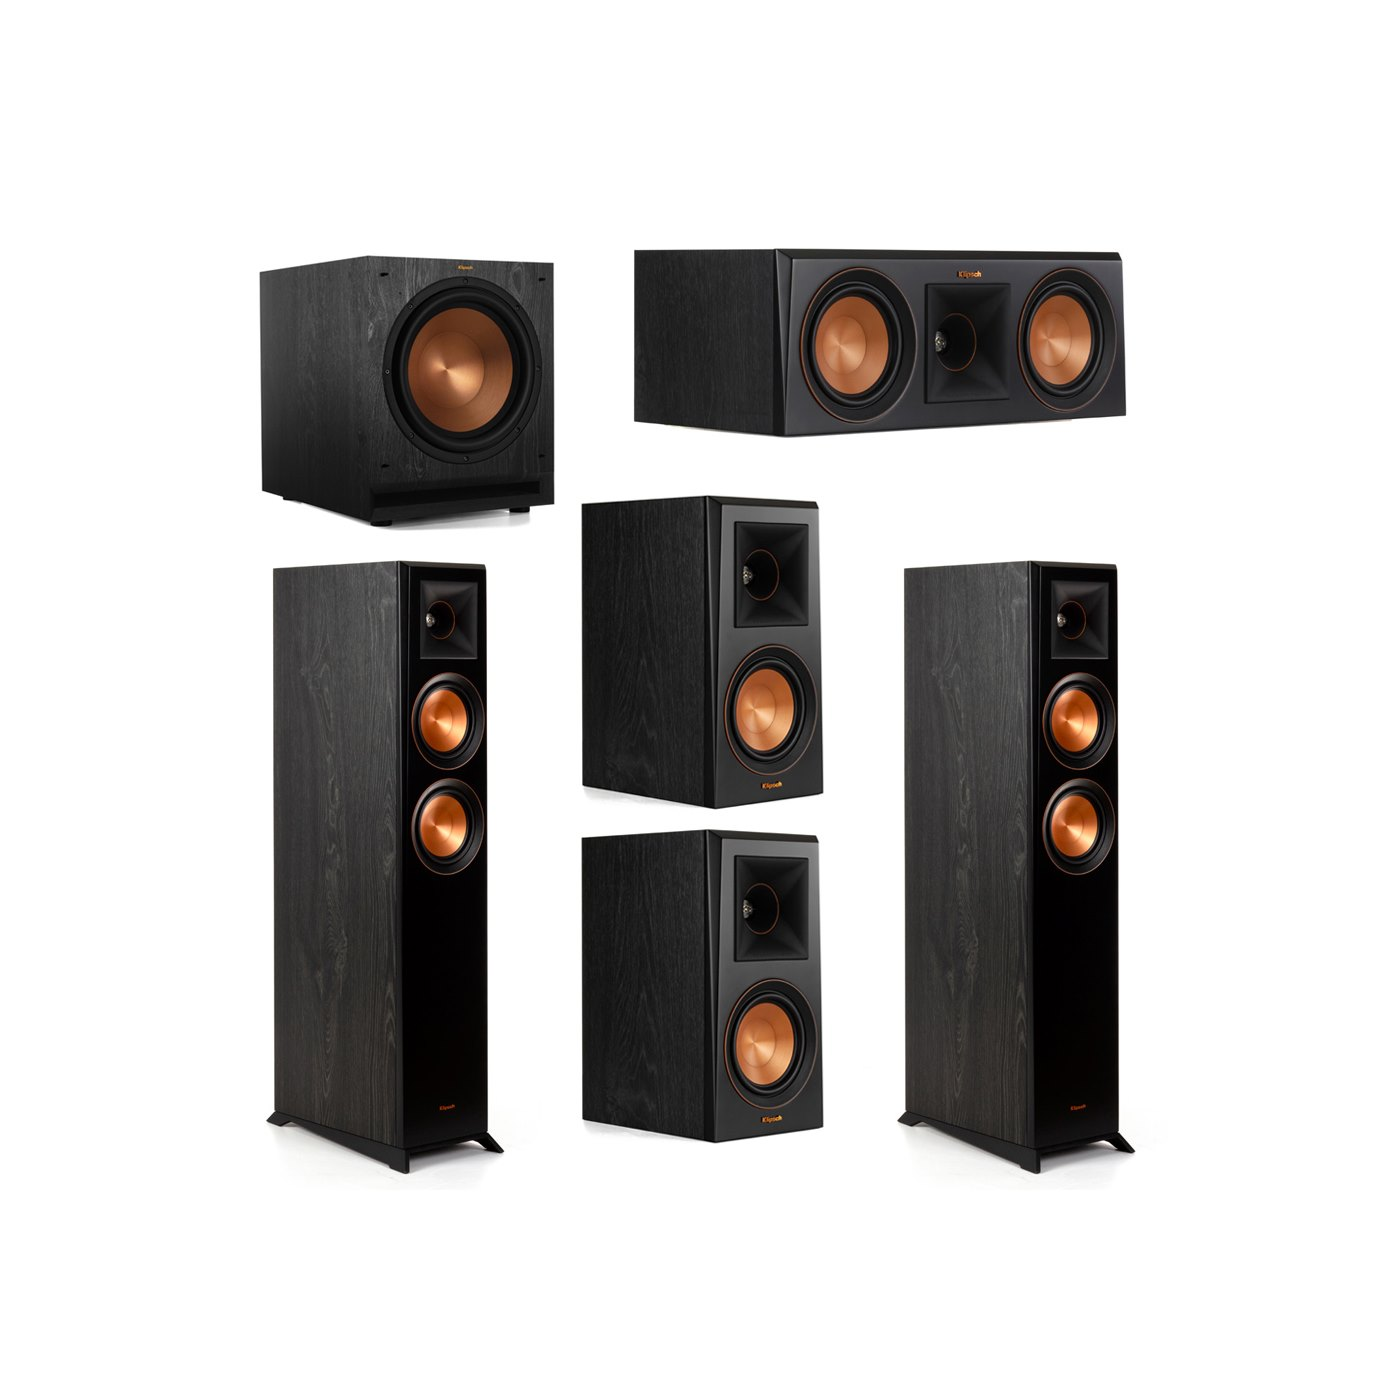 Klipsch 5.1 System with 2 RP-5000F Floorstanding Speakers, 1 Klipsch RP-500C Center Speaker, 2 Klipsch RP-500M Surround Speakers, 1 Klipsch SPL-120 Subwoofer